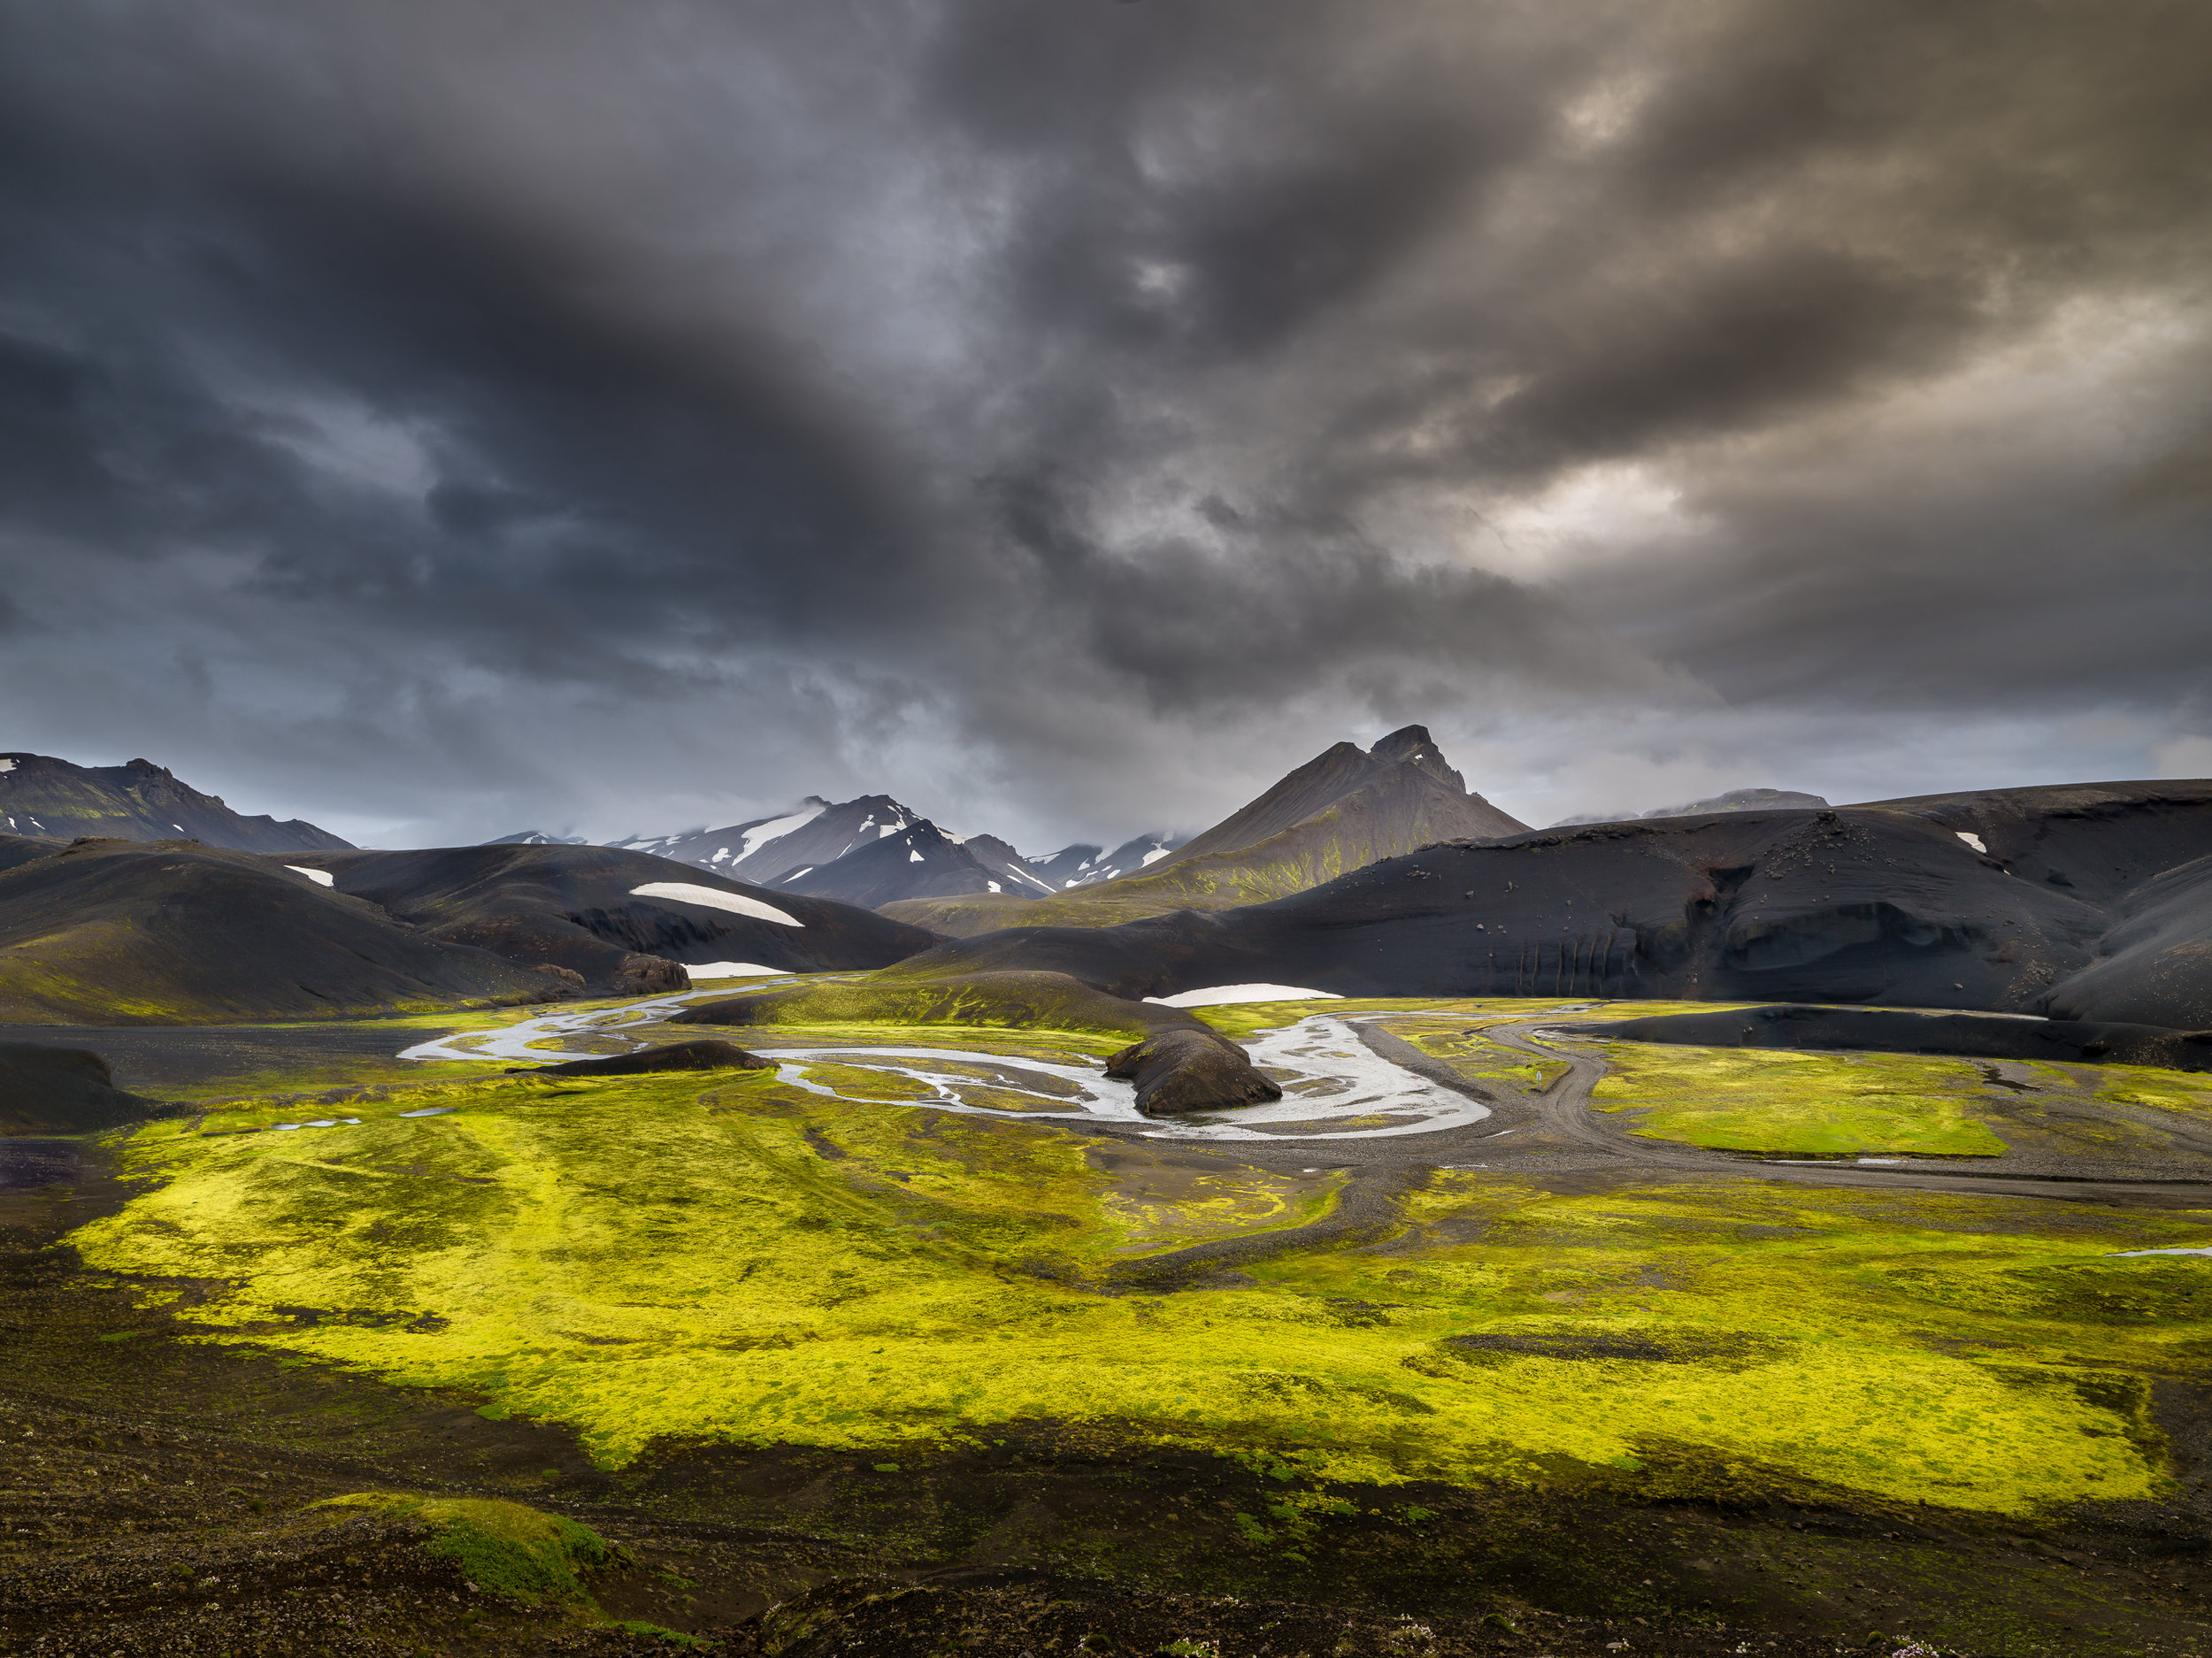 photo_workshop_iceland-2.jpg